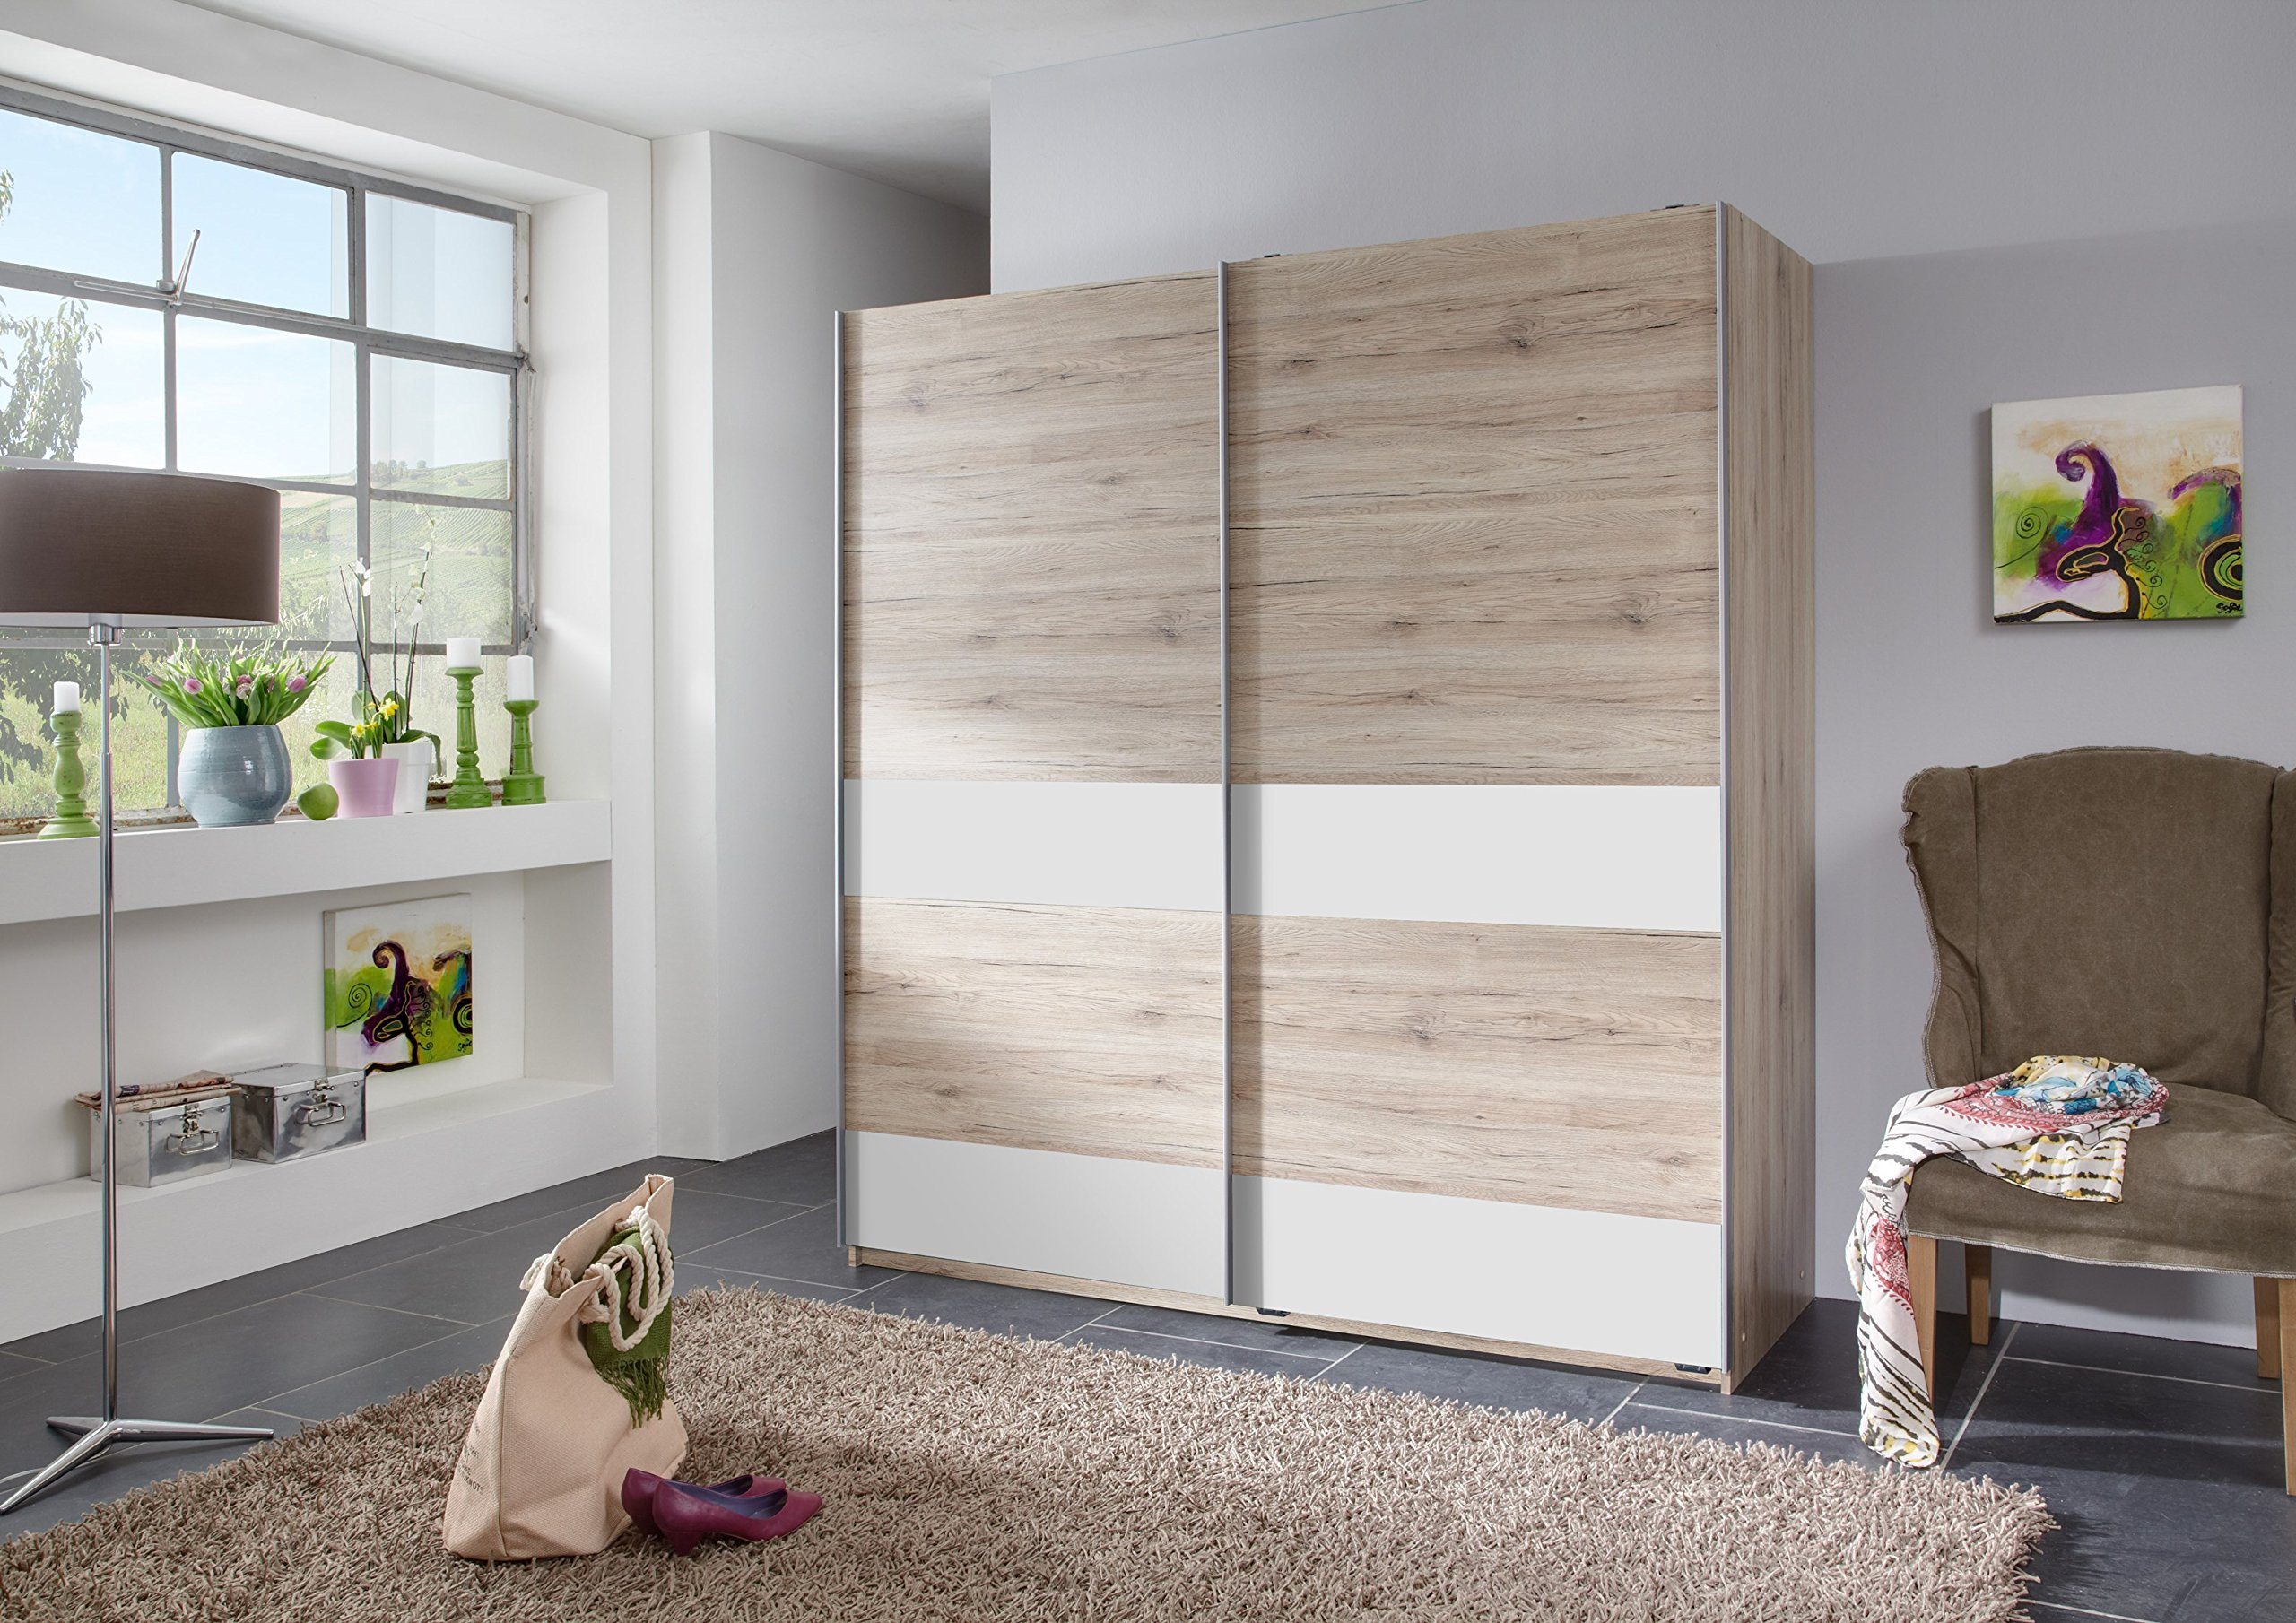 Germanica™ DRESDEN Bedroom 180cm Sliding 2 Door Wardrobe, In A Choice of 2 Colour Schemes SANREMO OAK & WHITE or CONCRETE & LAVA [Includes Full Assembly Service] (SANREMO OAK & WHITE) MADE IN GERMANY